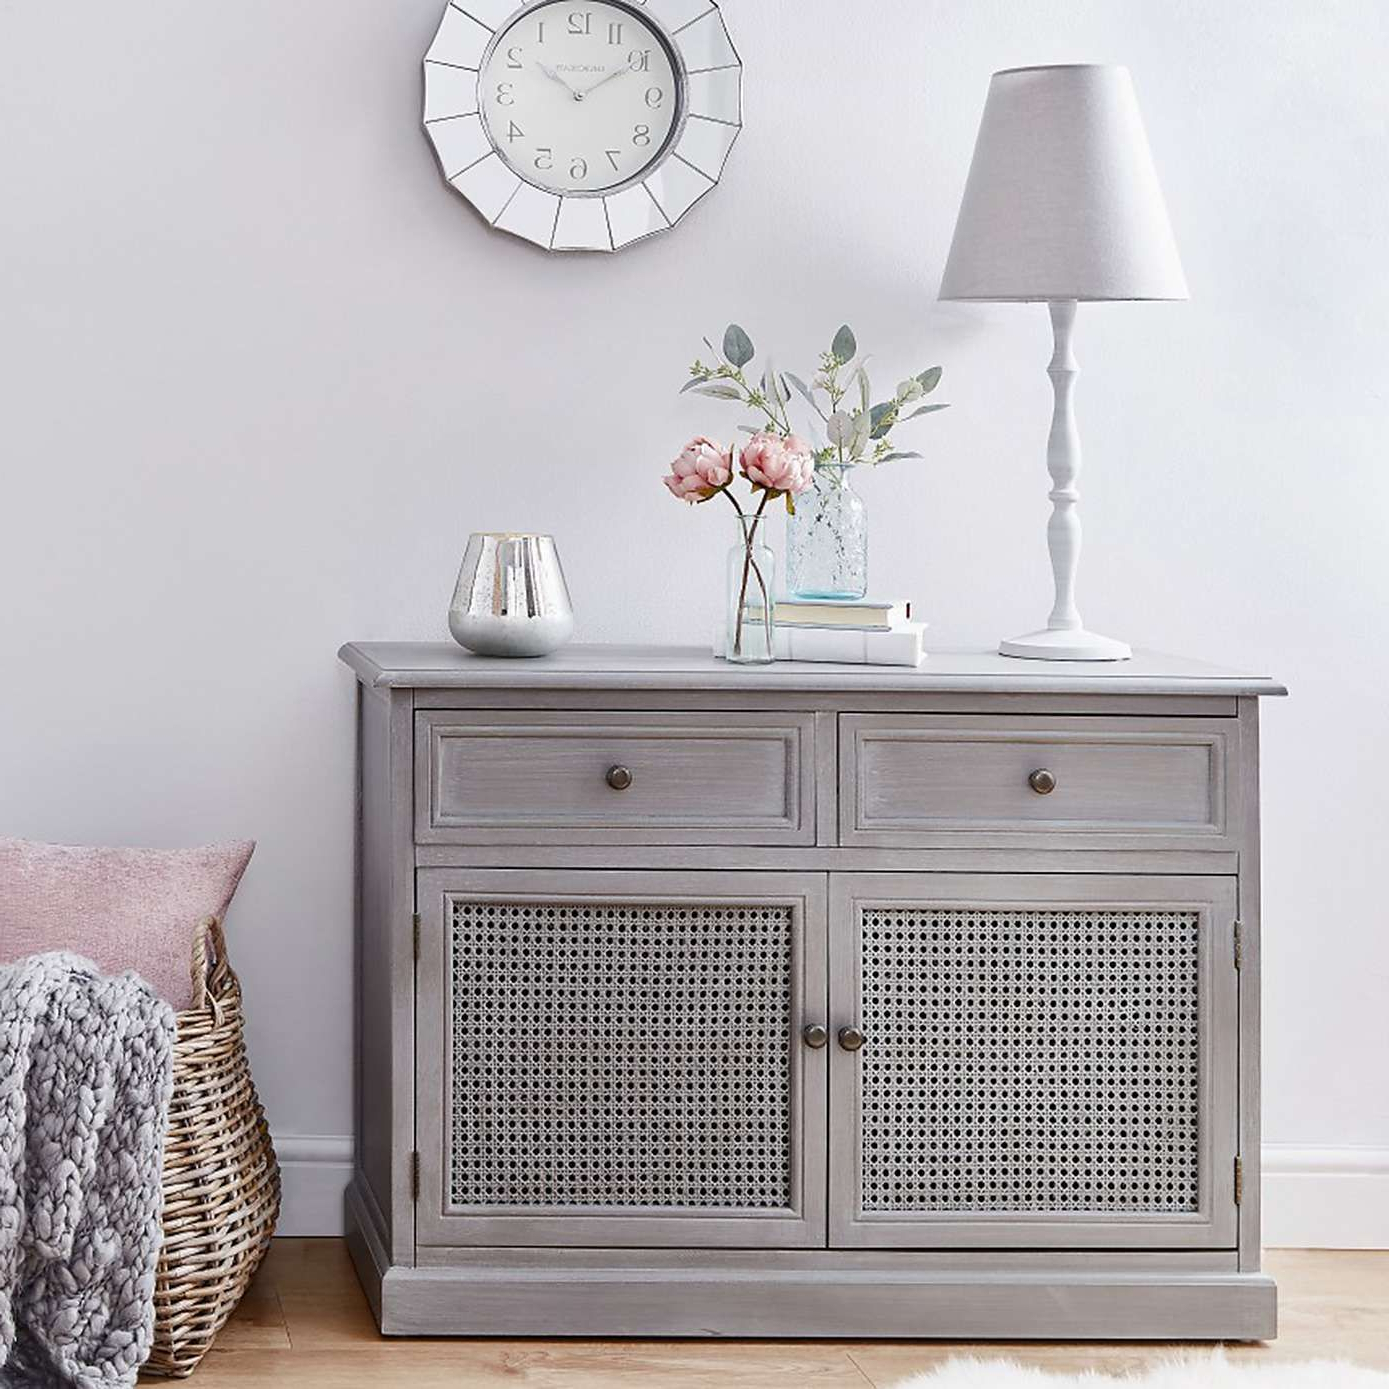 Lucy Cane Grey Small Sideboard | Living Room Ideas In 2019 Within Hayter Sideboards (View 13 of 20)